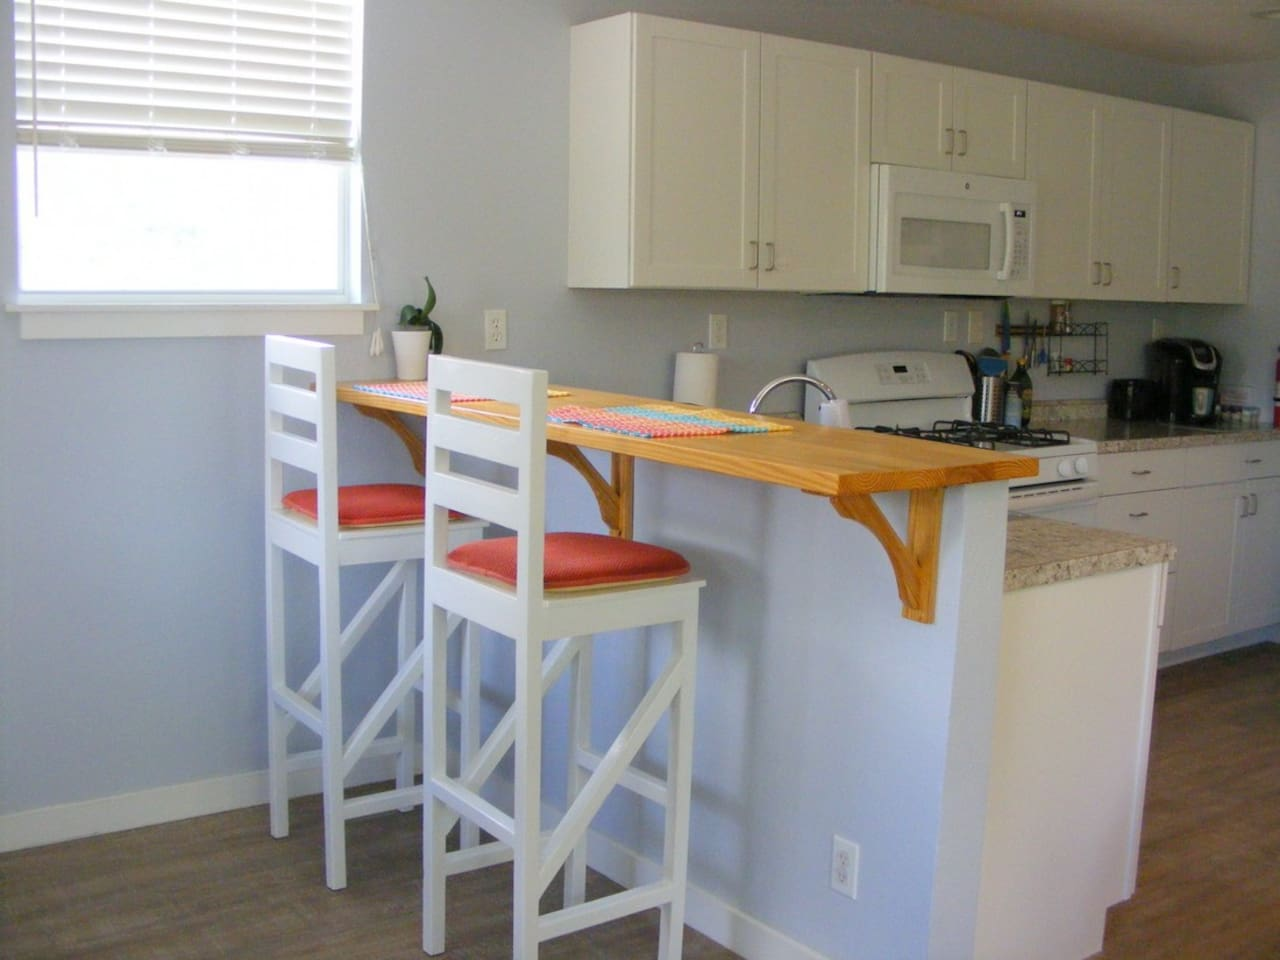 Bar stools and counter as you come in the front door.